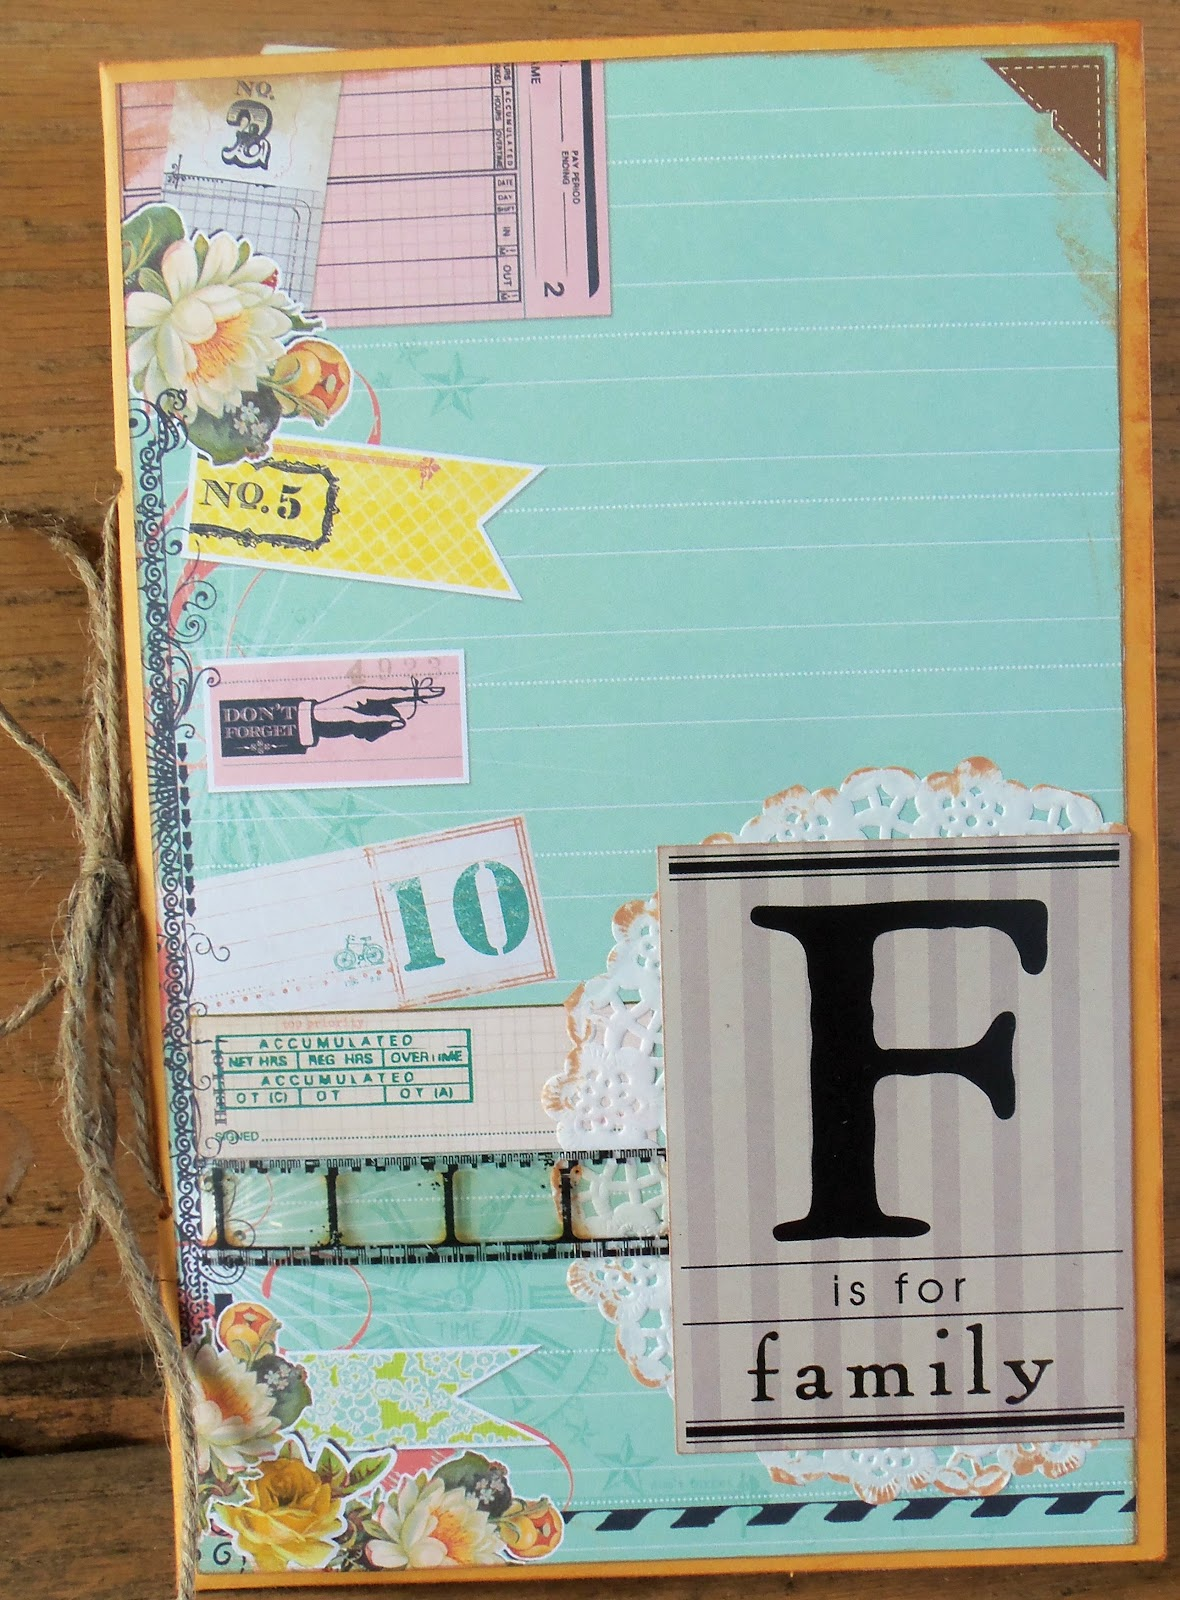 How to make scrapbook simple - Today I M Going To Show You How To Make A Simple But Very Cute Mini Scrapbook Album I Love Mini Albums And I Love Envelopes This Tutorial Combines The